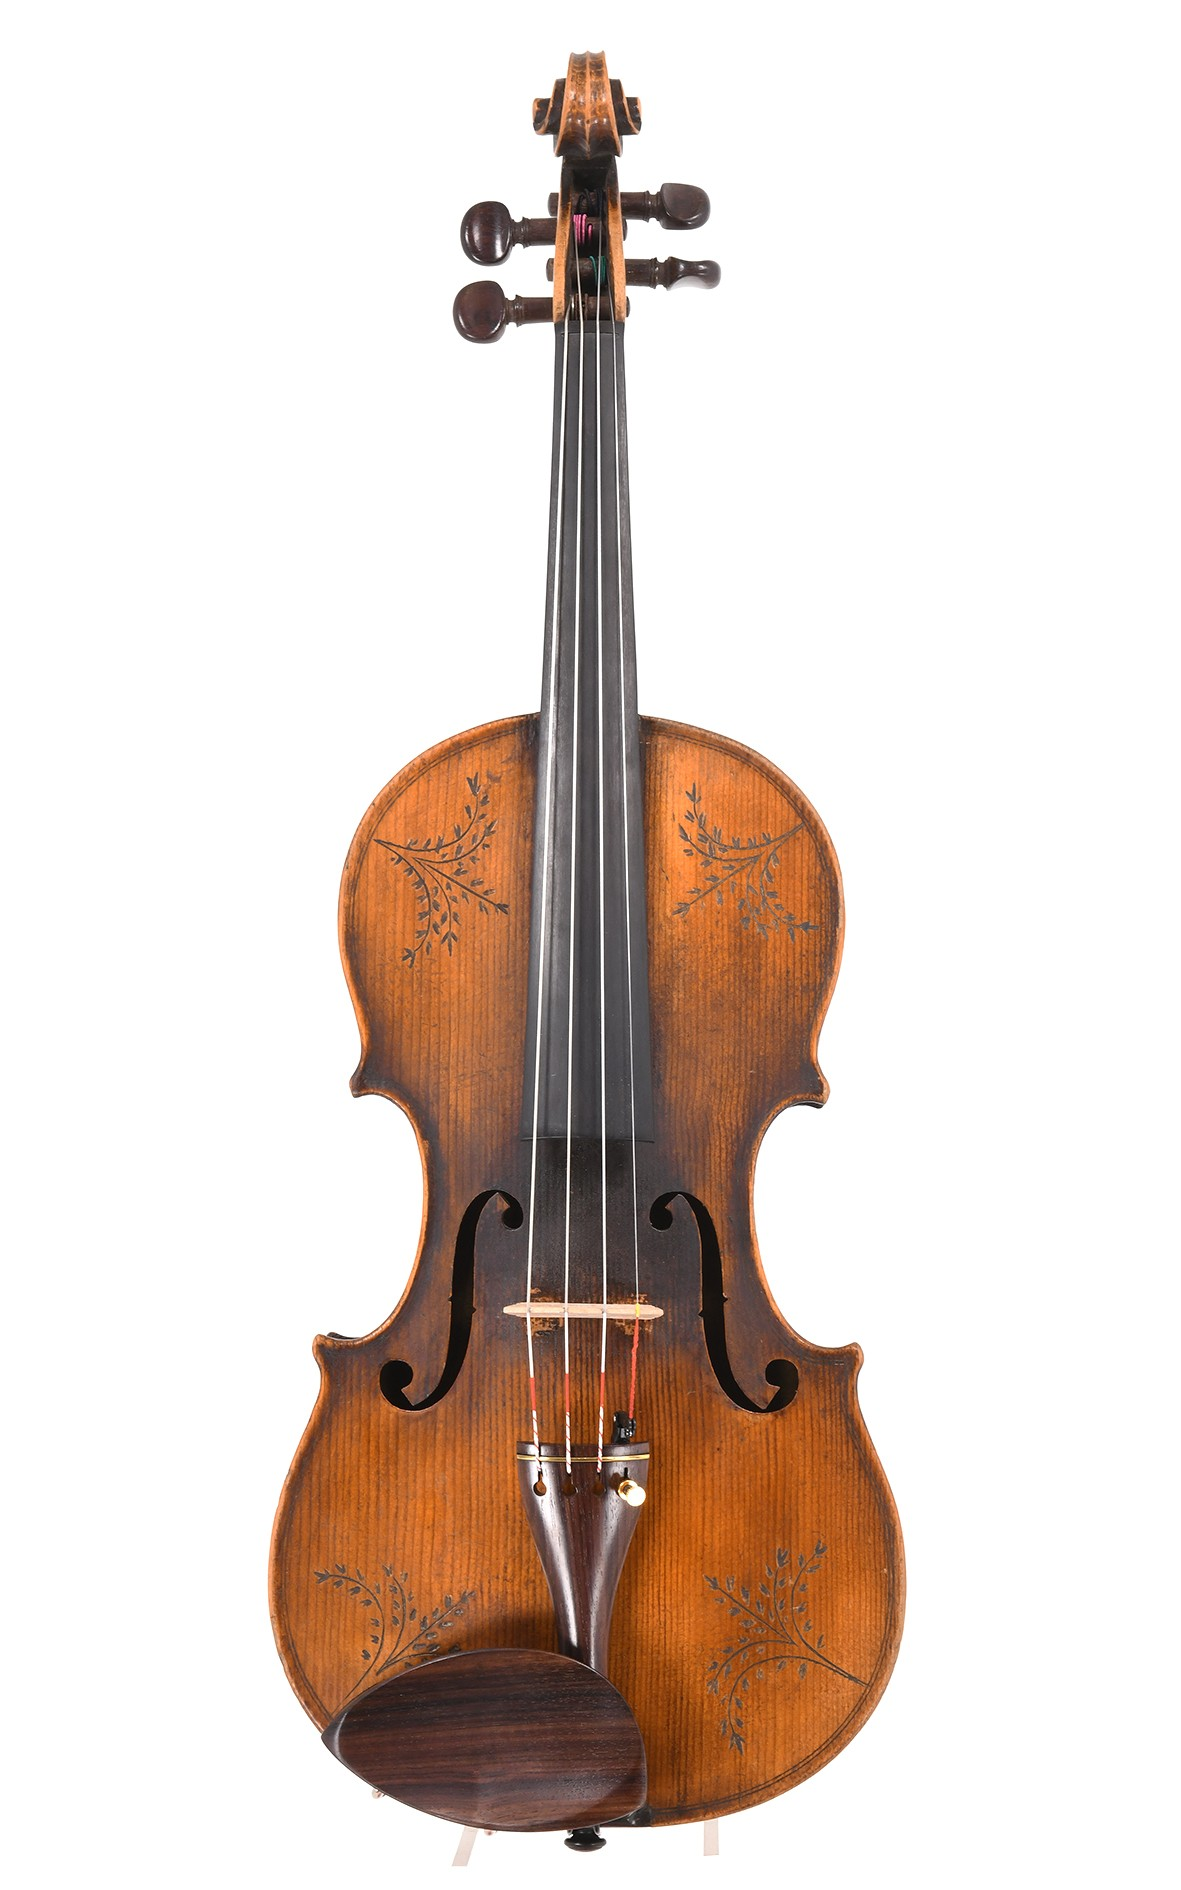 Old French Mirecourt violin with wood carvings, approx. 1900